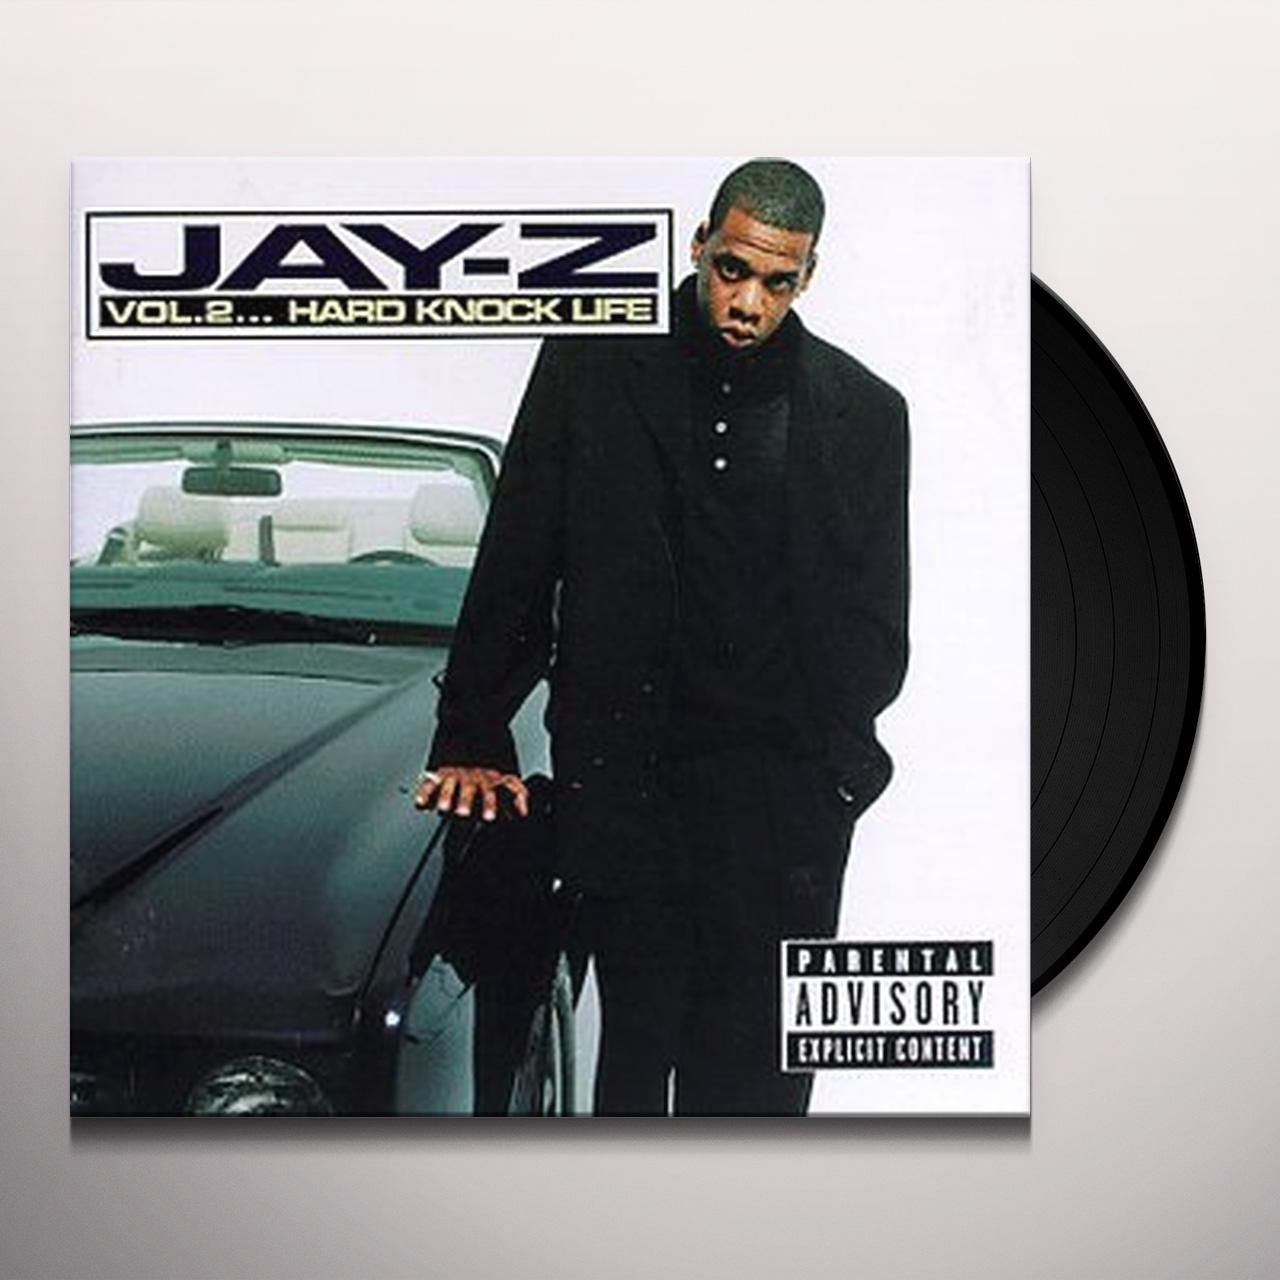 Jay z volume 2 hard knock life vinyl record hover to zoom malvernweather